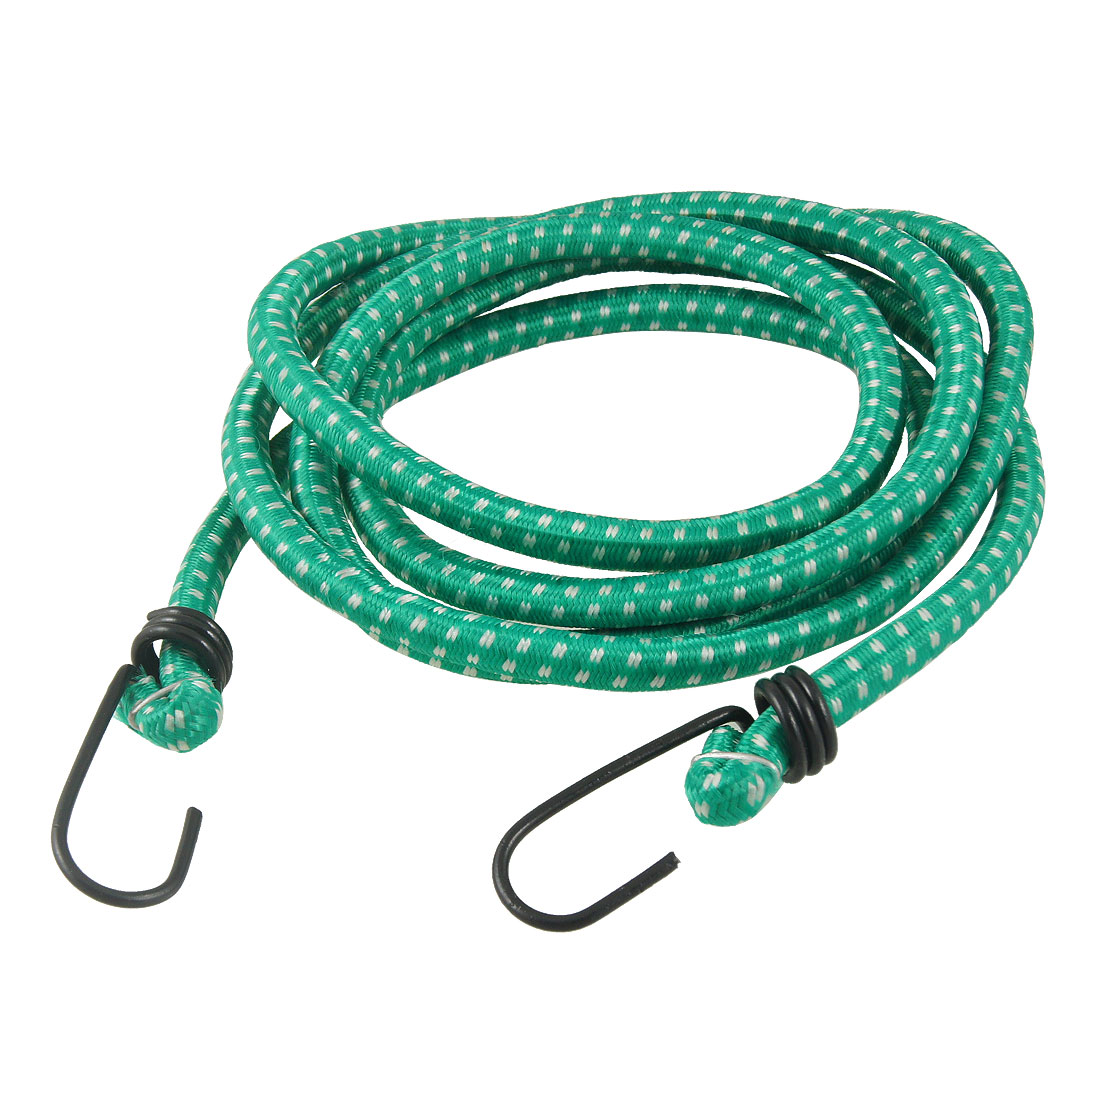 Double Hooks 2M Long Tie Down Cords Elastic Straps Green for Bicycle